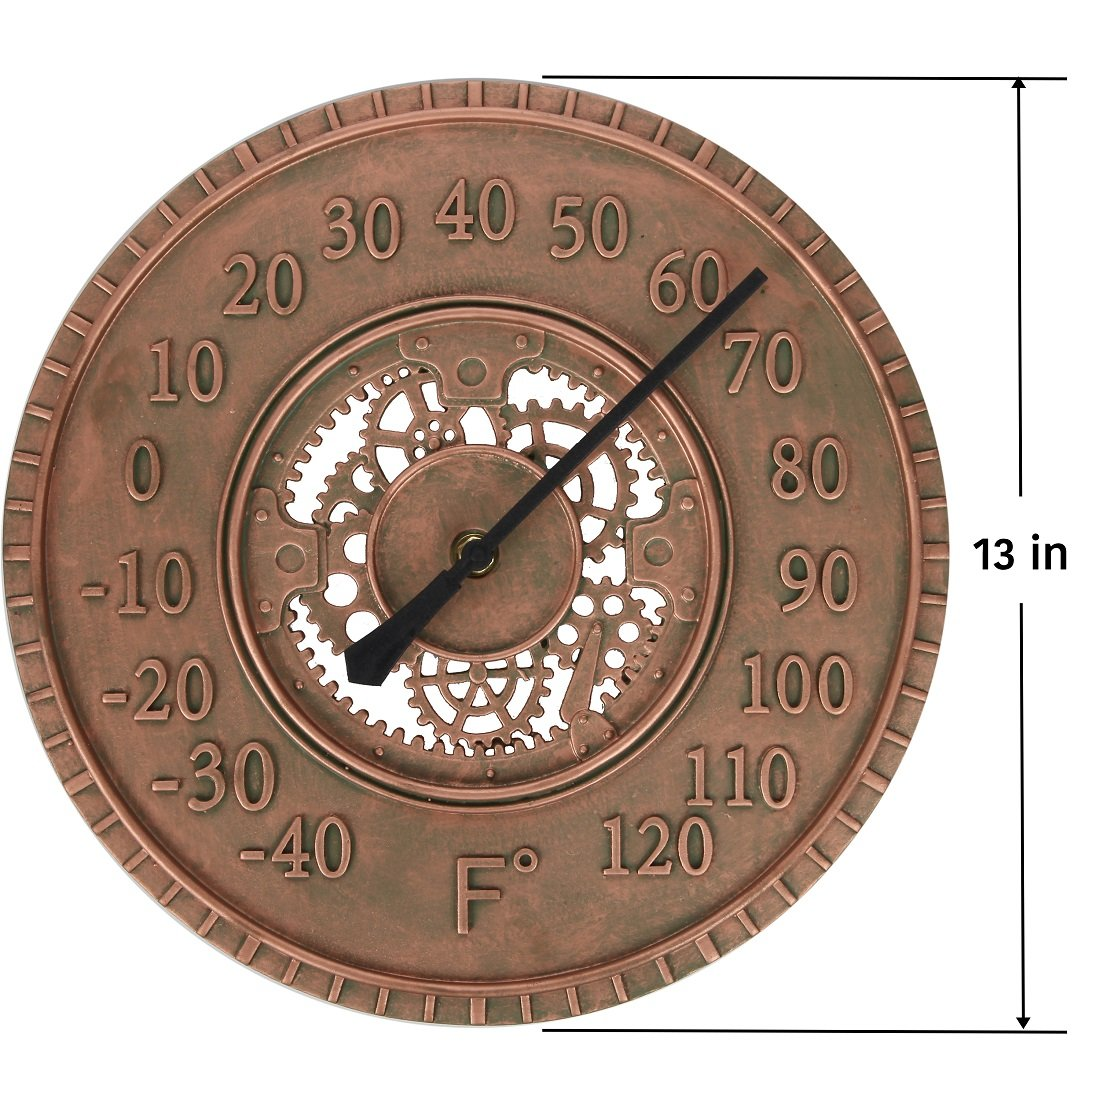 Lily's Home Hanging Wall Thermometer, Steampunk Gear and Cog Design with a Bronze Finish, Ideal for Indoor or Outdoor Use, Poly-Resin (13 Inches Diameter) by Lilyshome (Image #3)